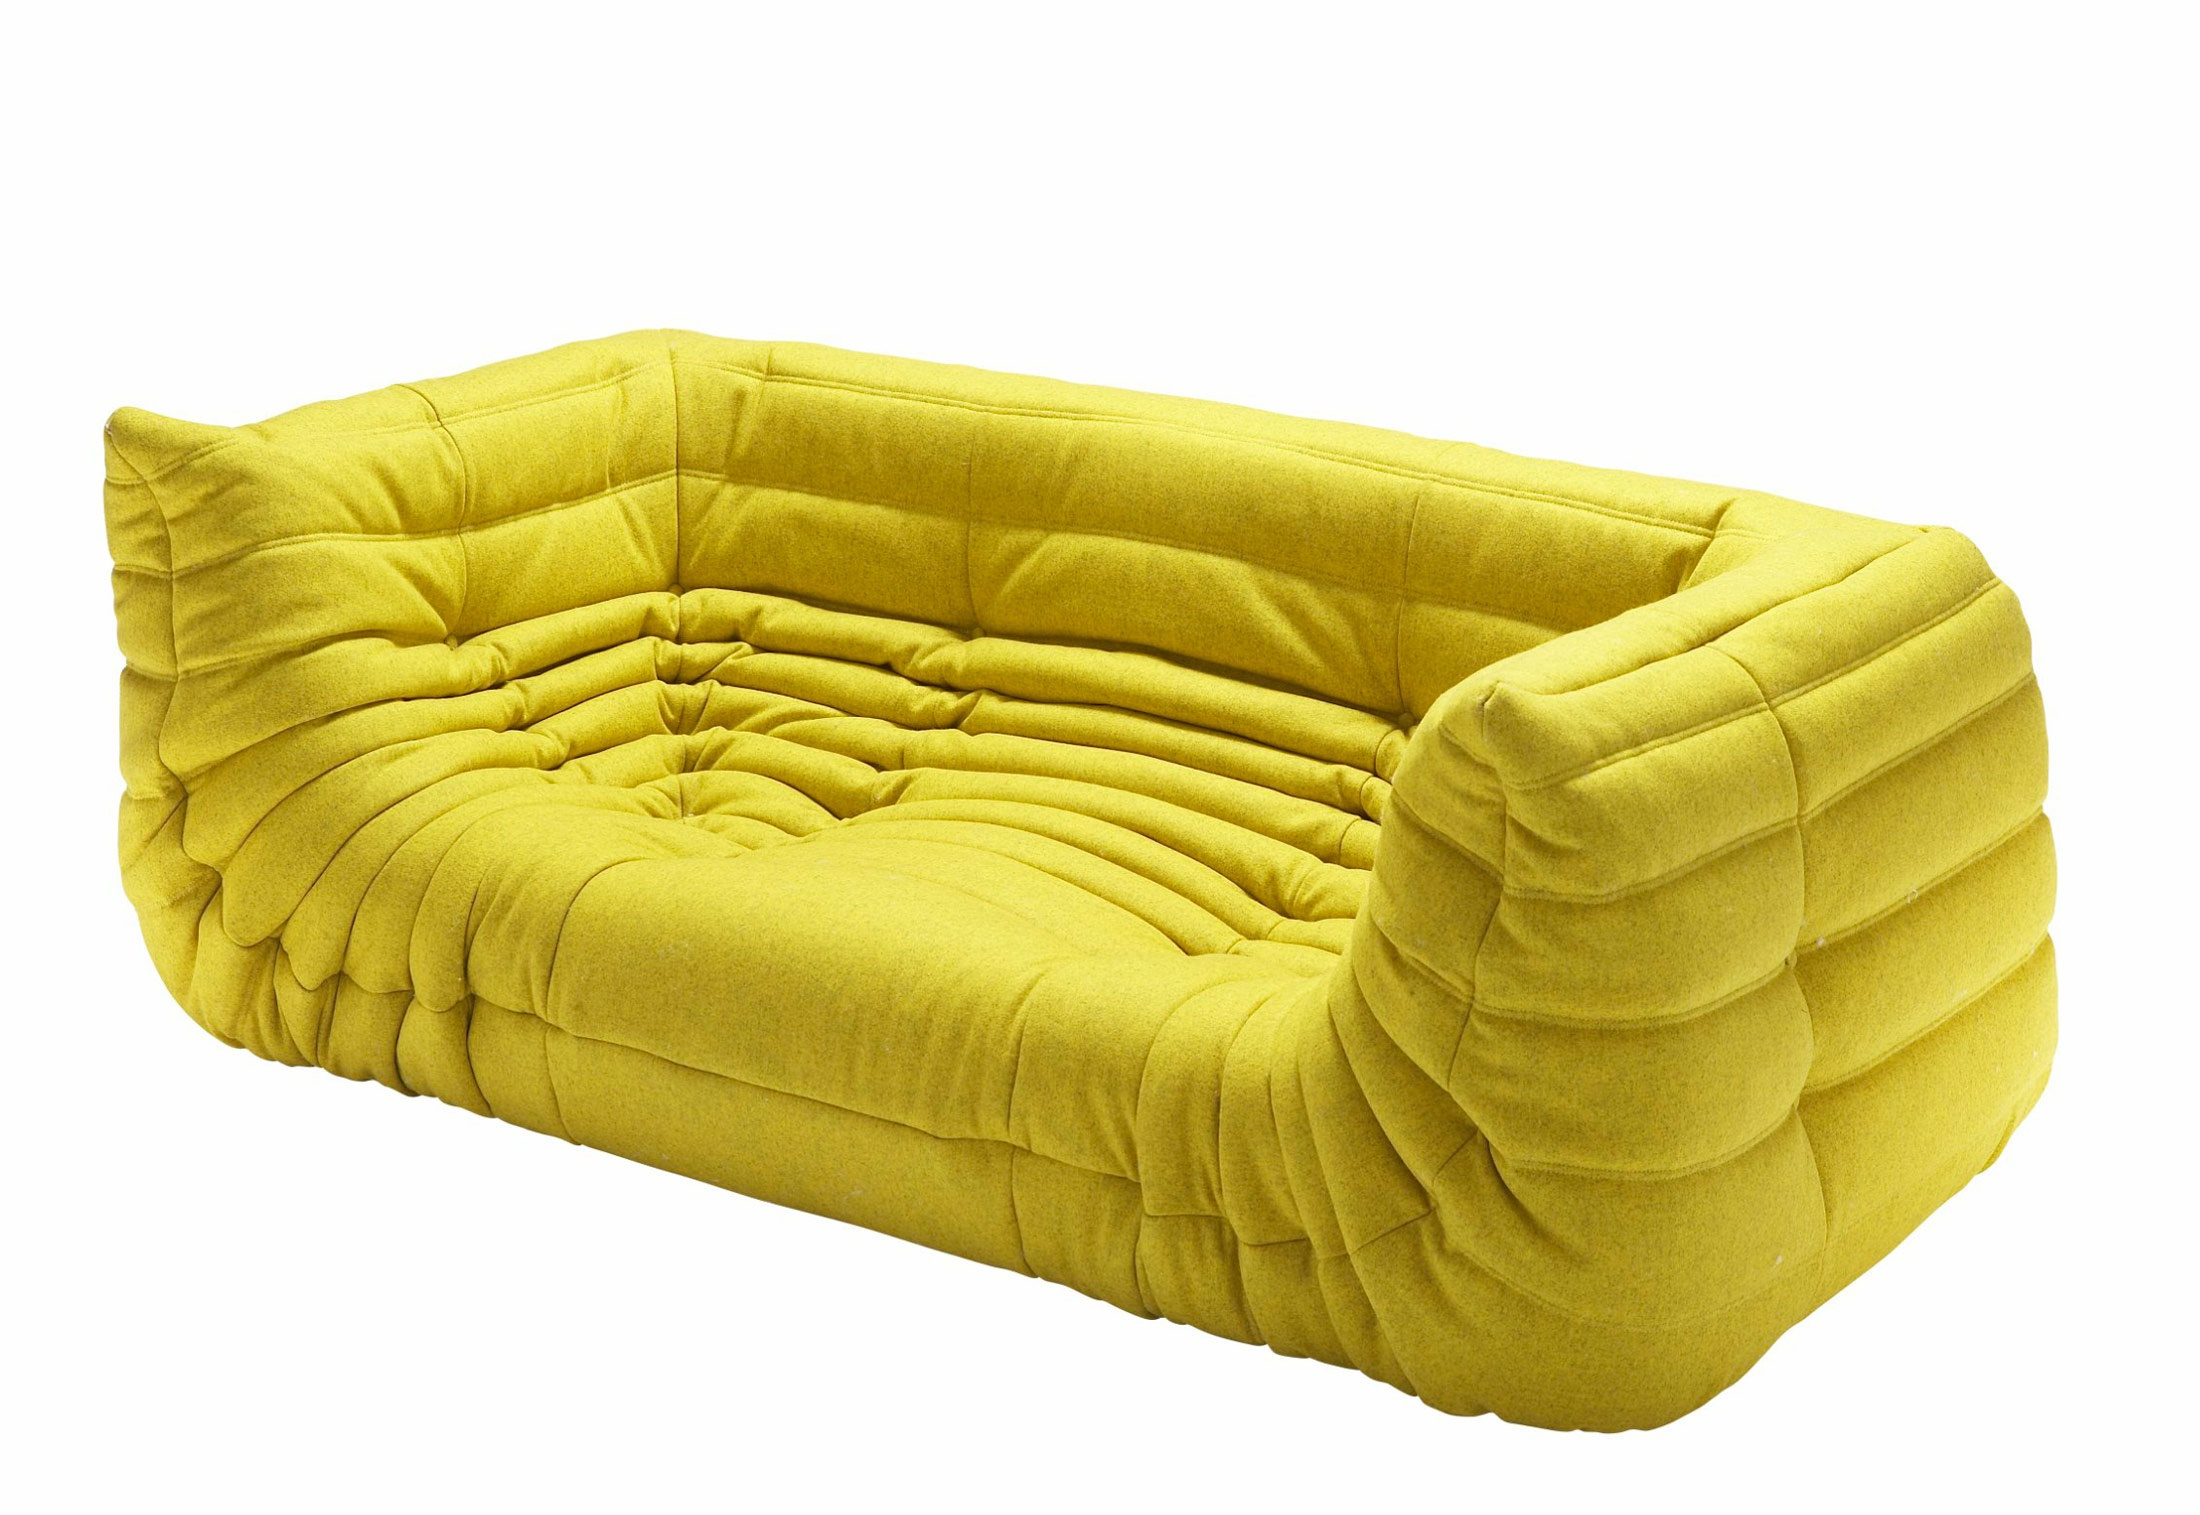 Double Sofa In A Modern Style Togo